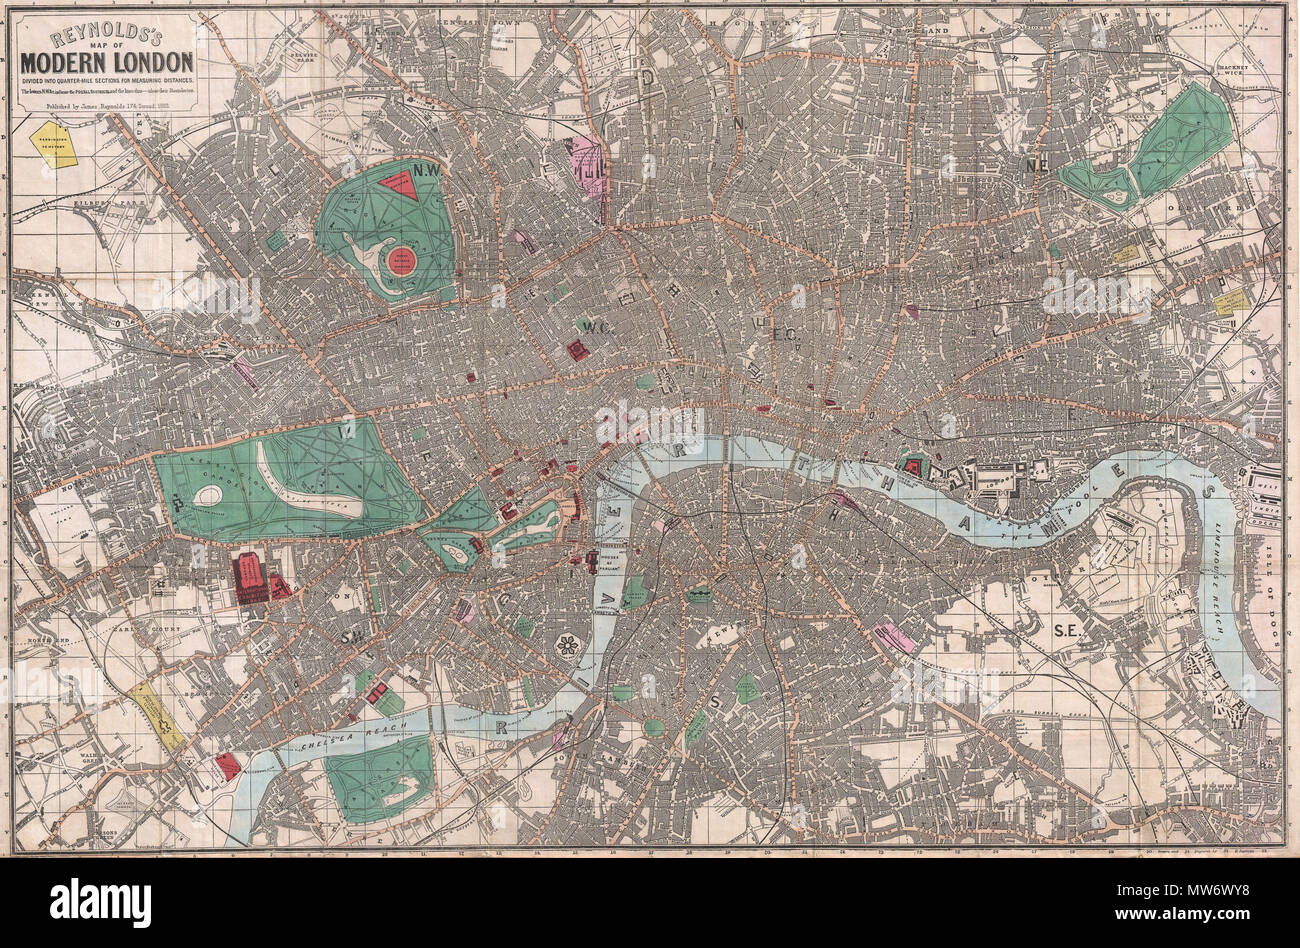 Sections Of London Map.Reynolds S Map Of Modern London Divided Into Quarter Mile Sections